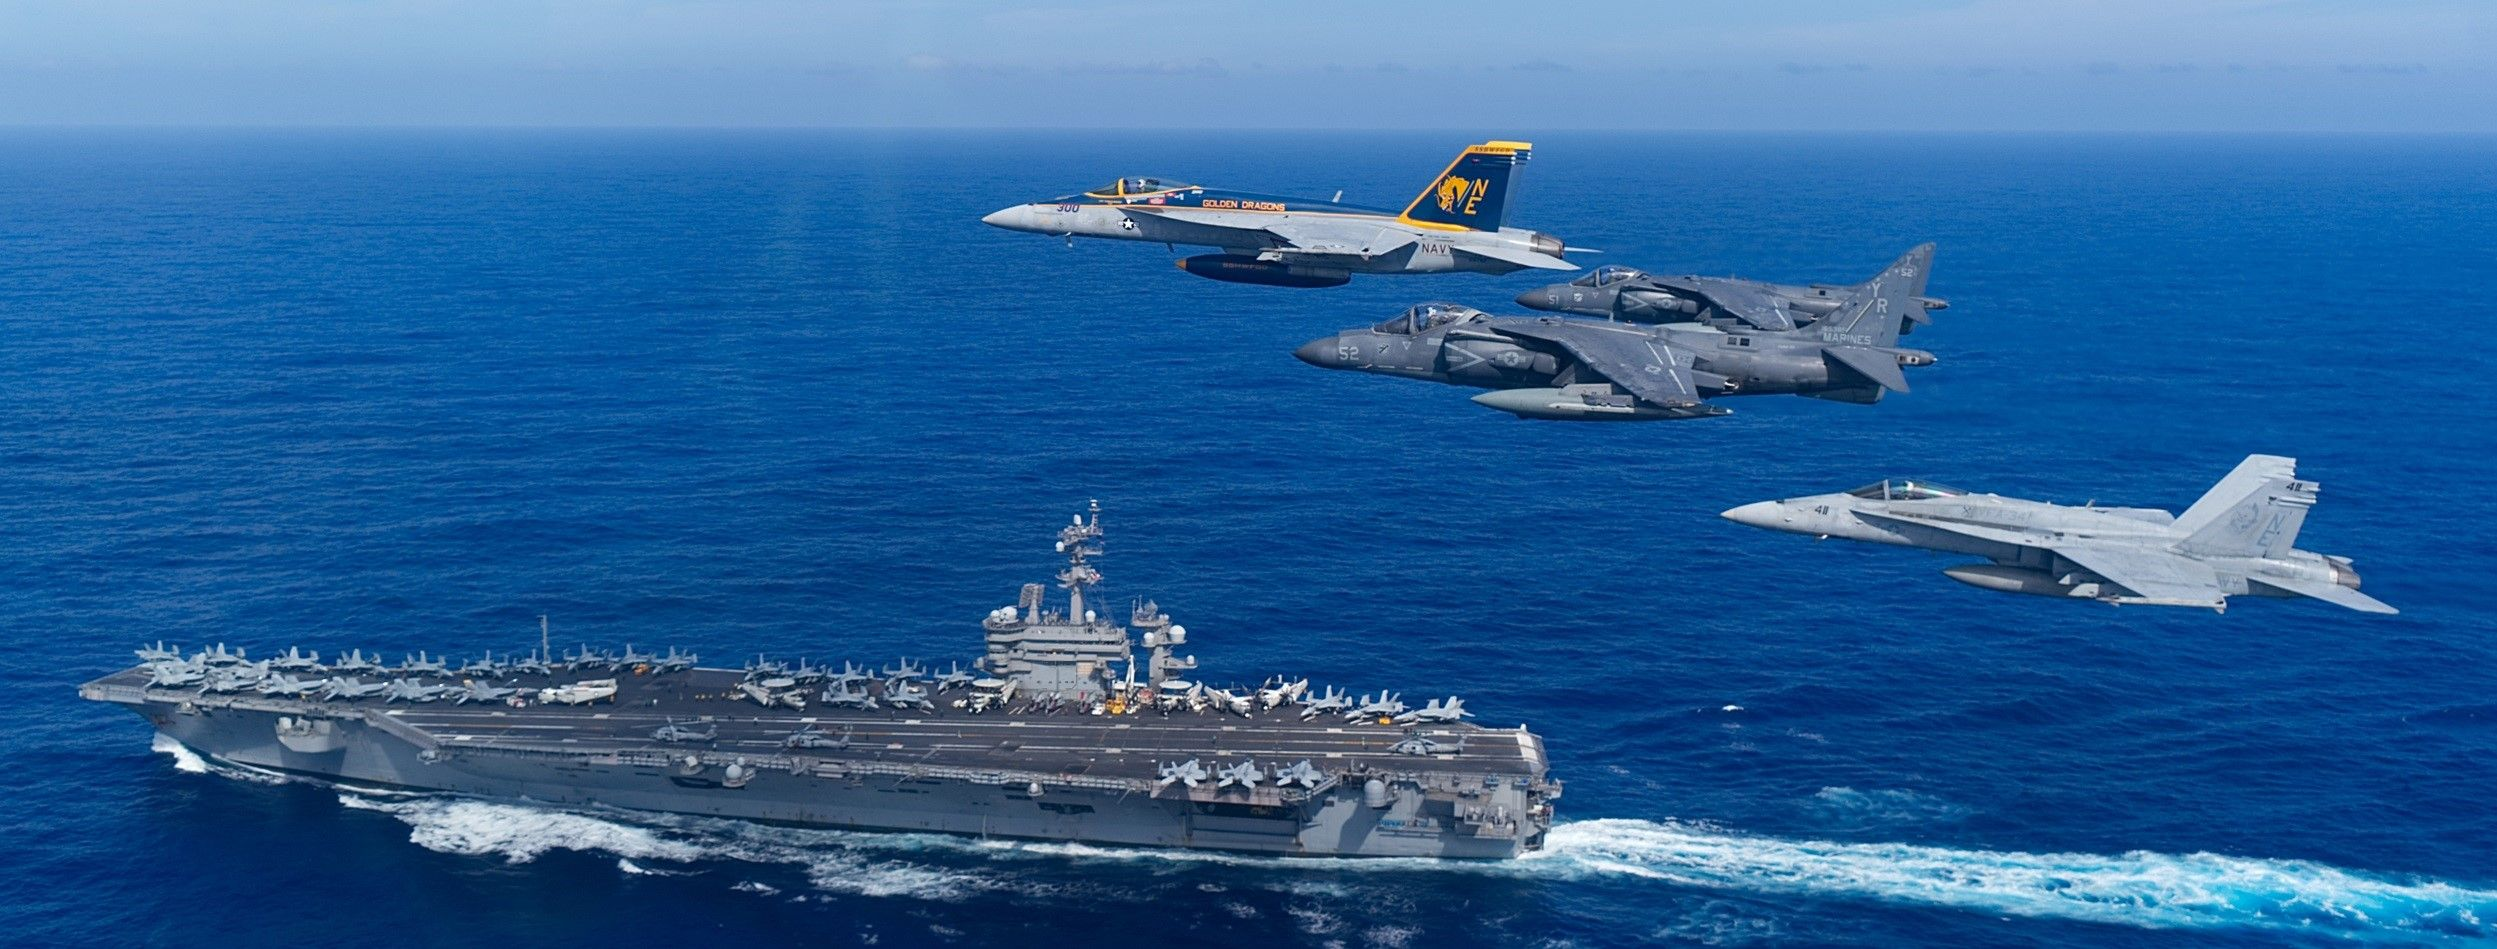 Nimitz-class aircraft carrier USS Carl Vinson (CVN 70)